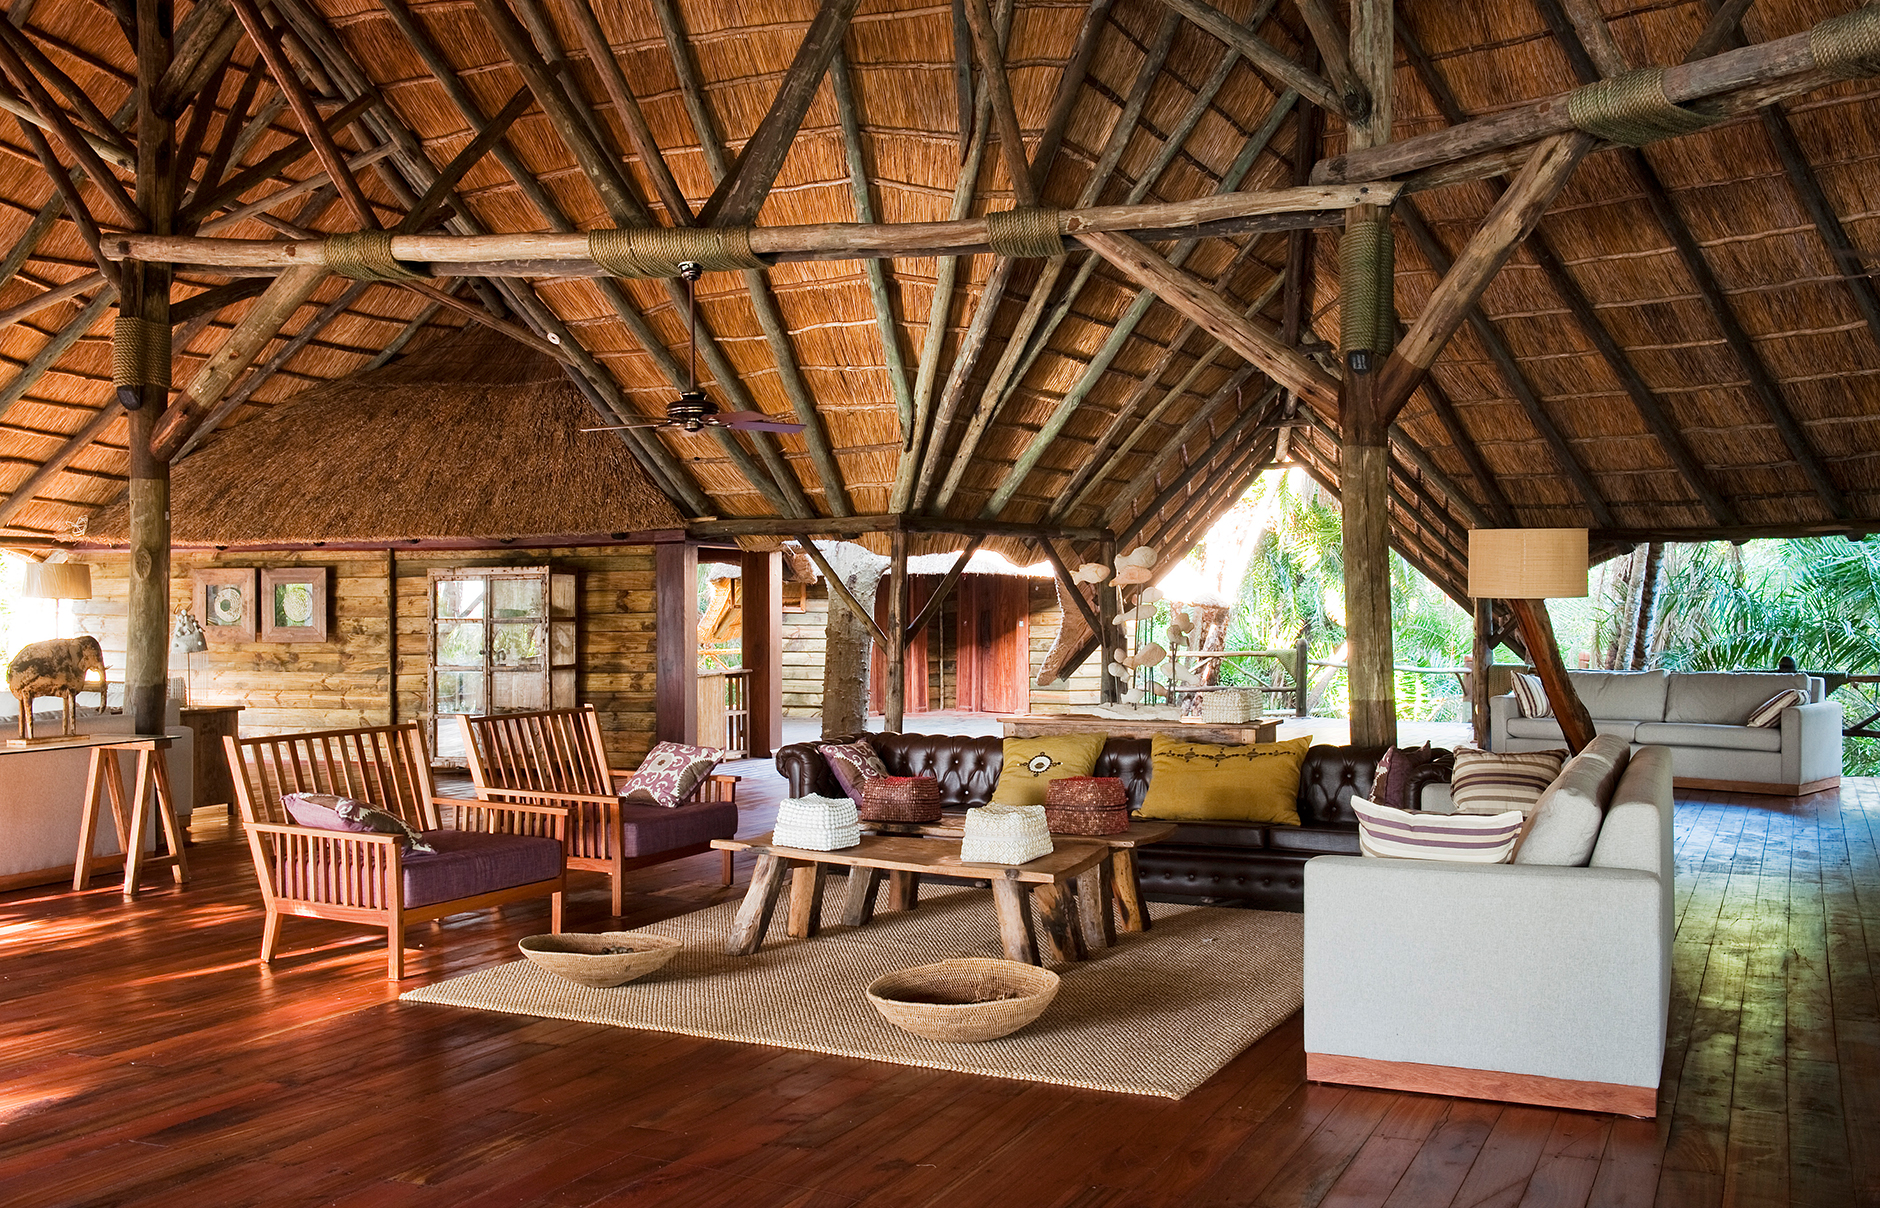 D Living Gutschein 2 In 1 Tropical Beach And African Safari In Tanzanias